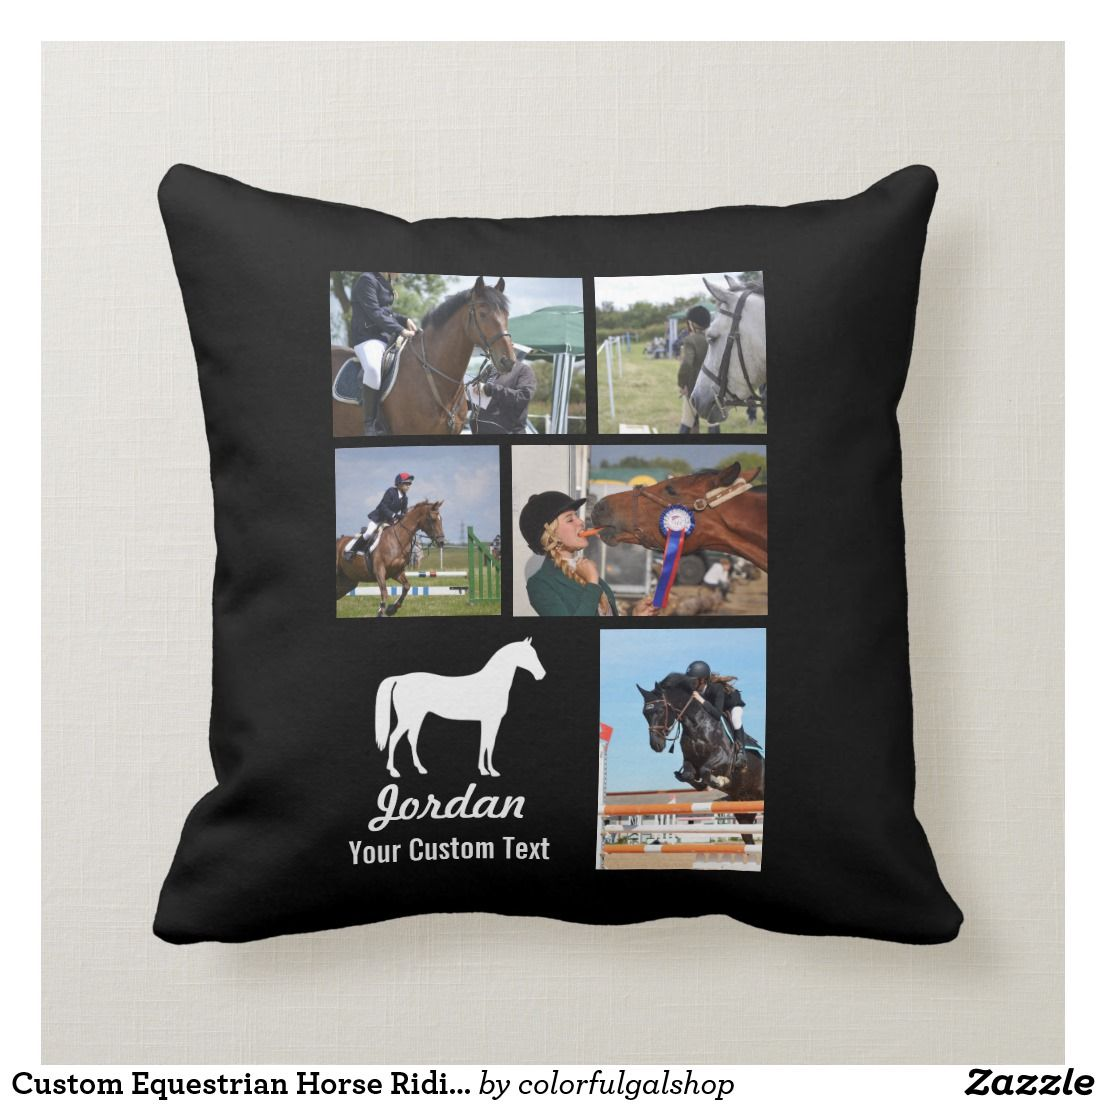 Custom Equestrian Horse Riding Photo Collage Name Throw Pillow Zazzle Com Horse Riding Equestrian Throw Pillows Horse Throw Pillows